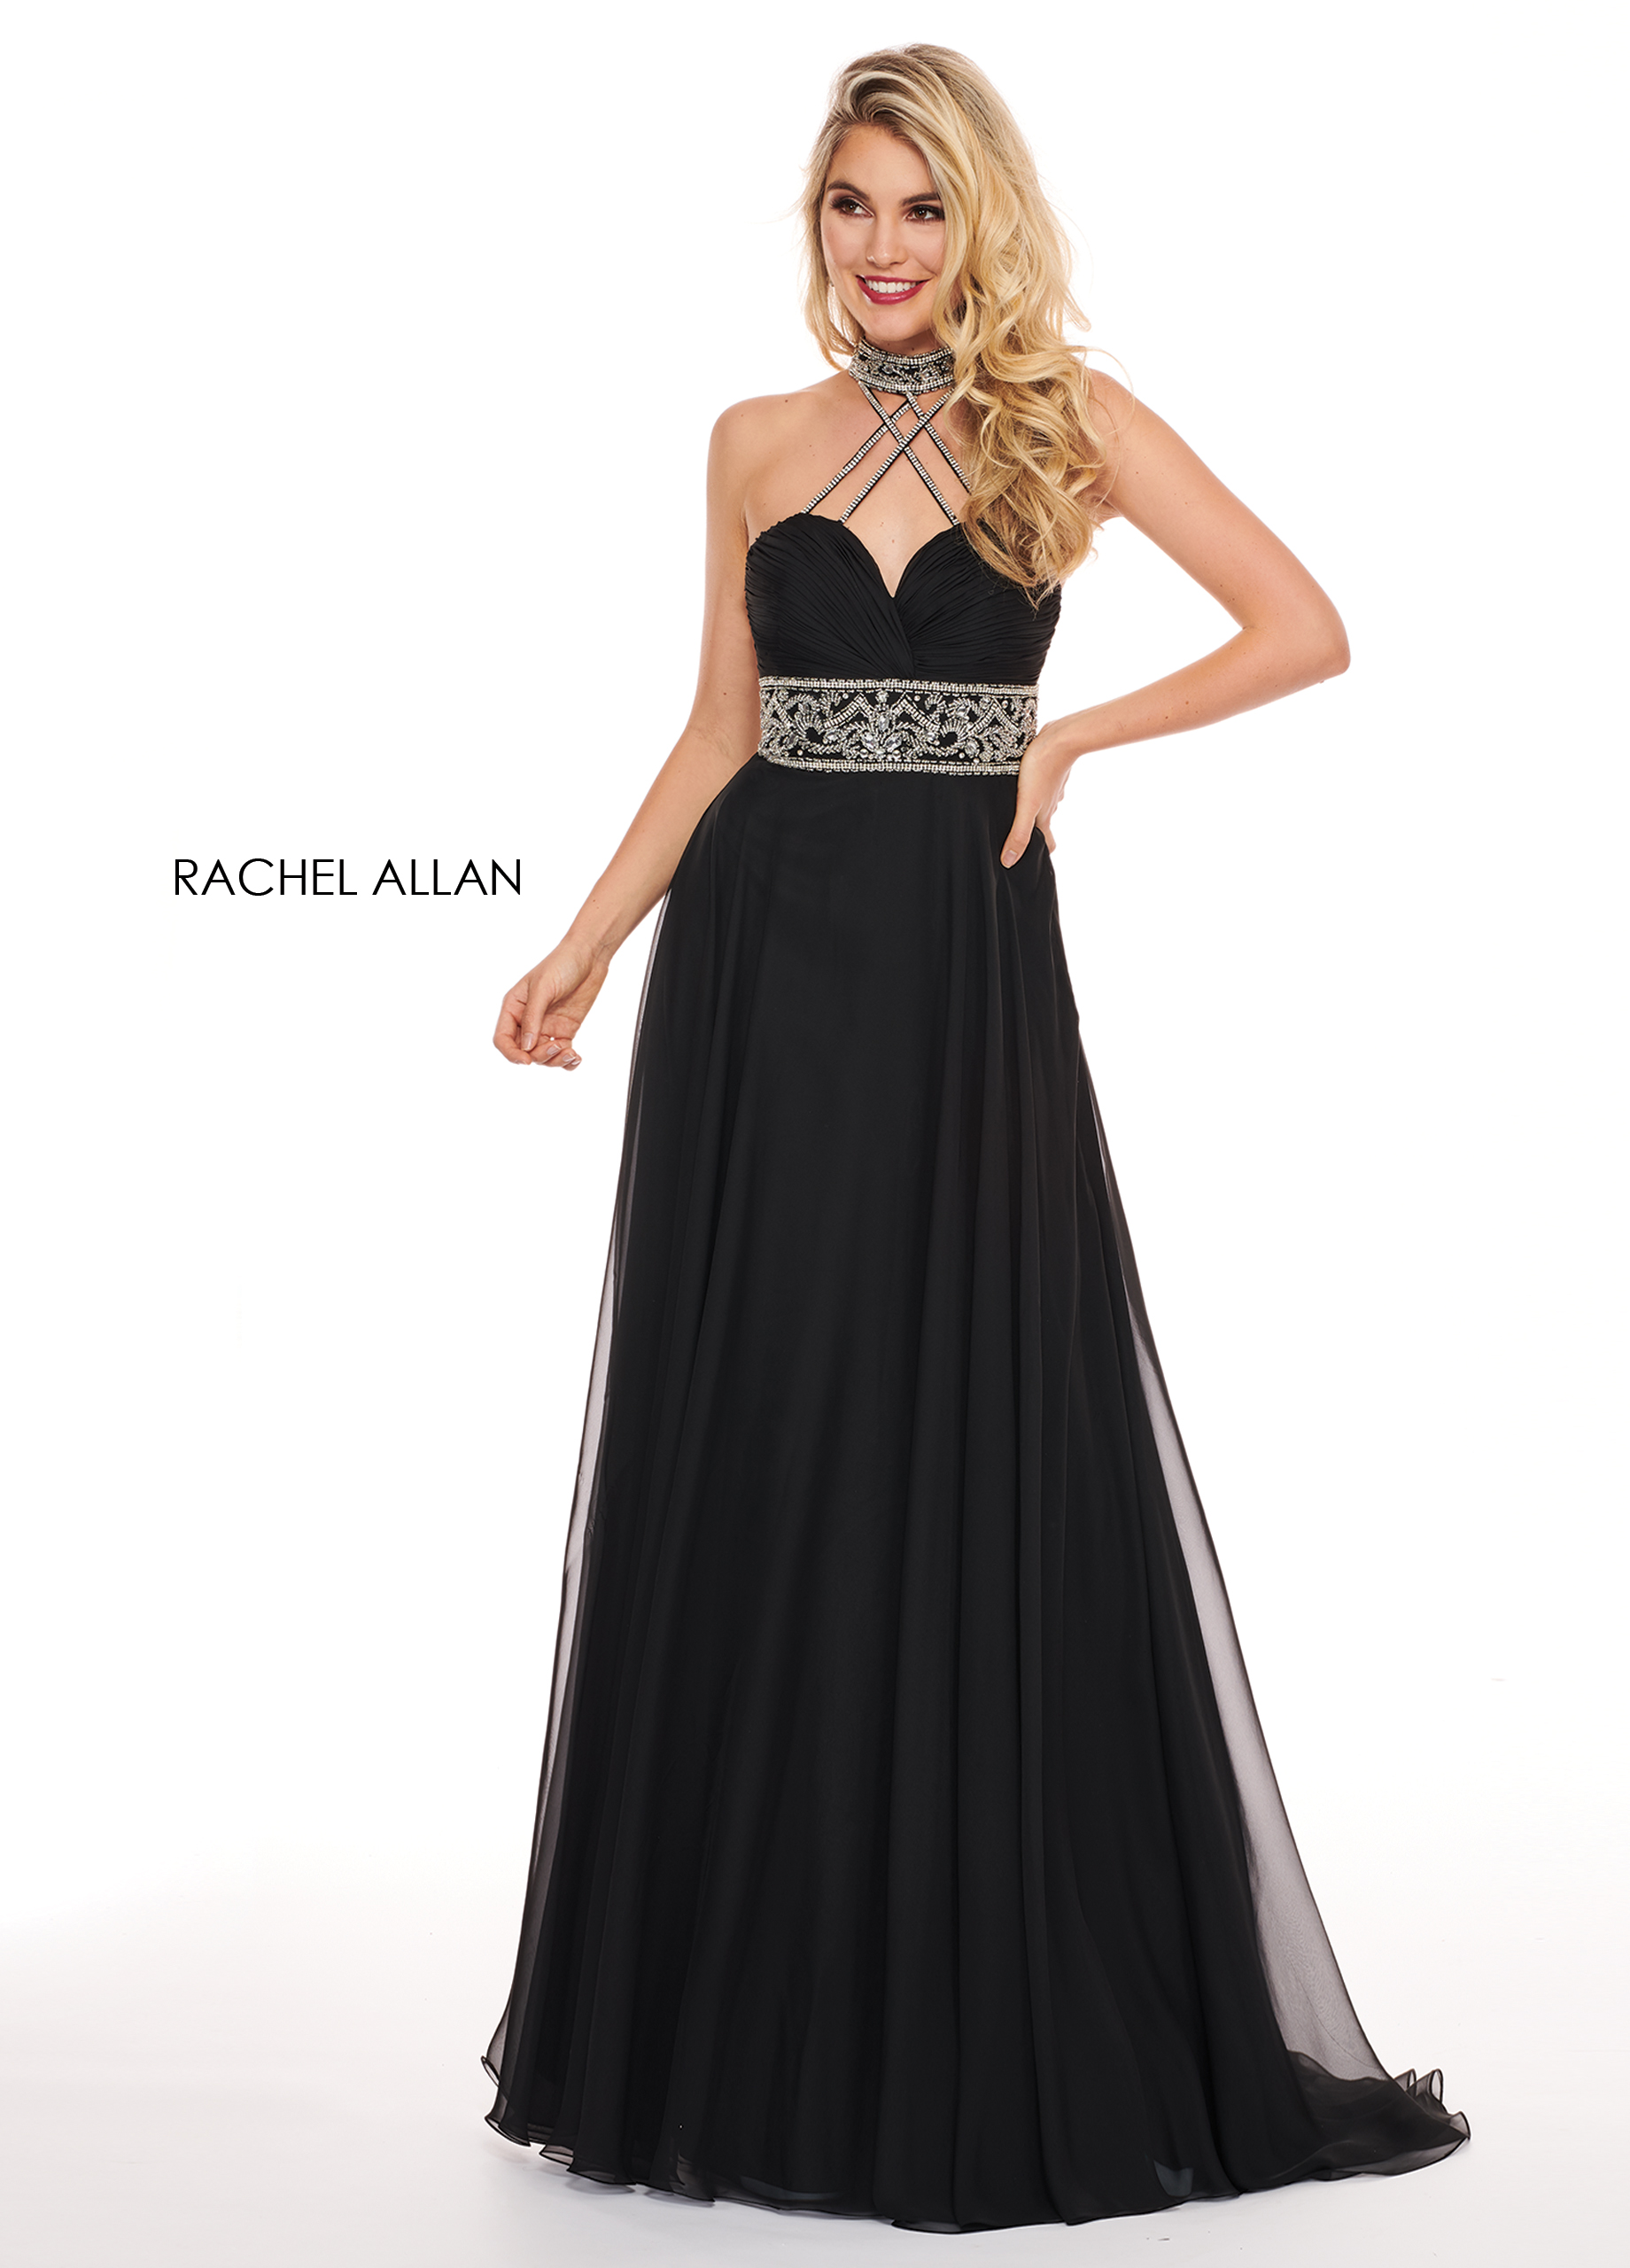 Choker A-Line Prom Dresses in Black Color